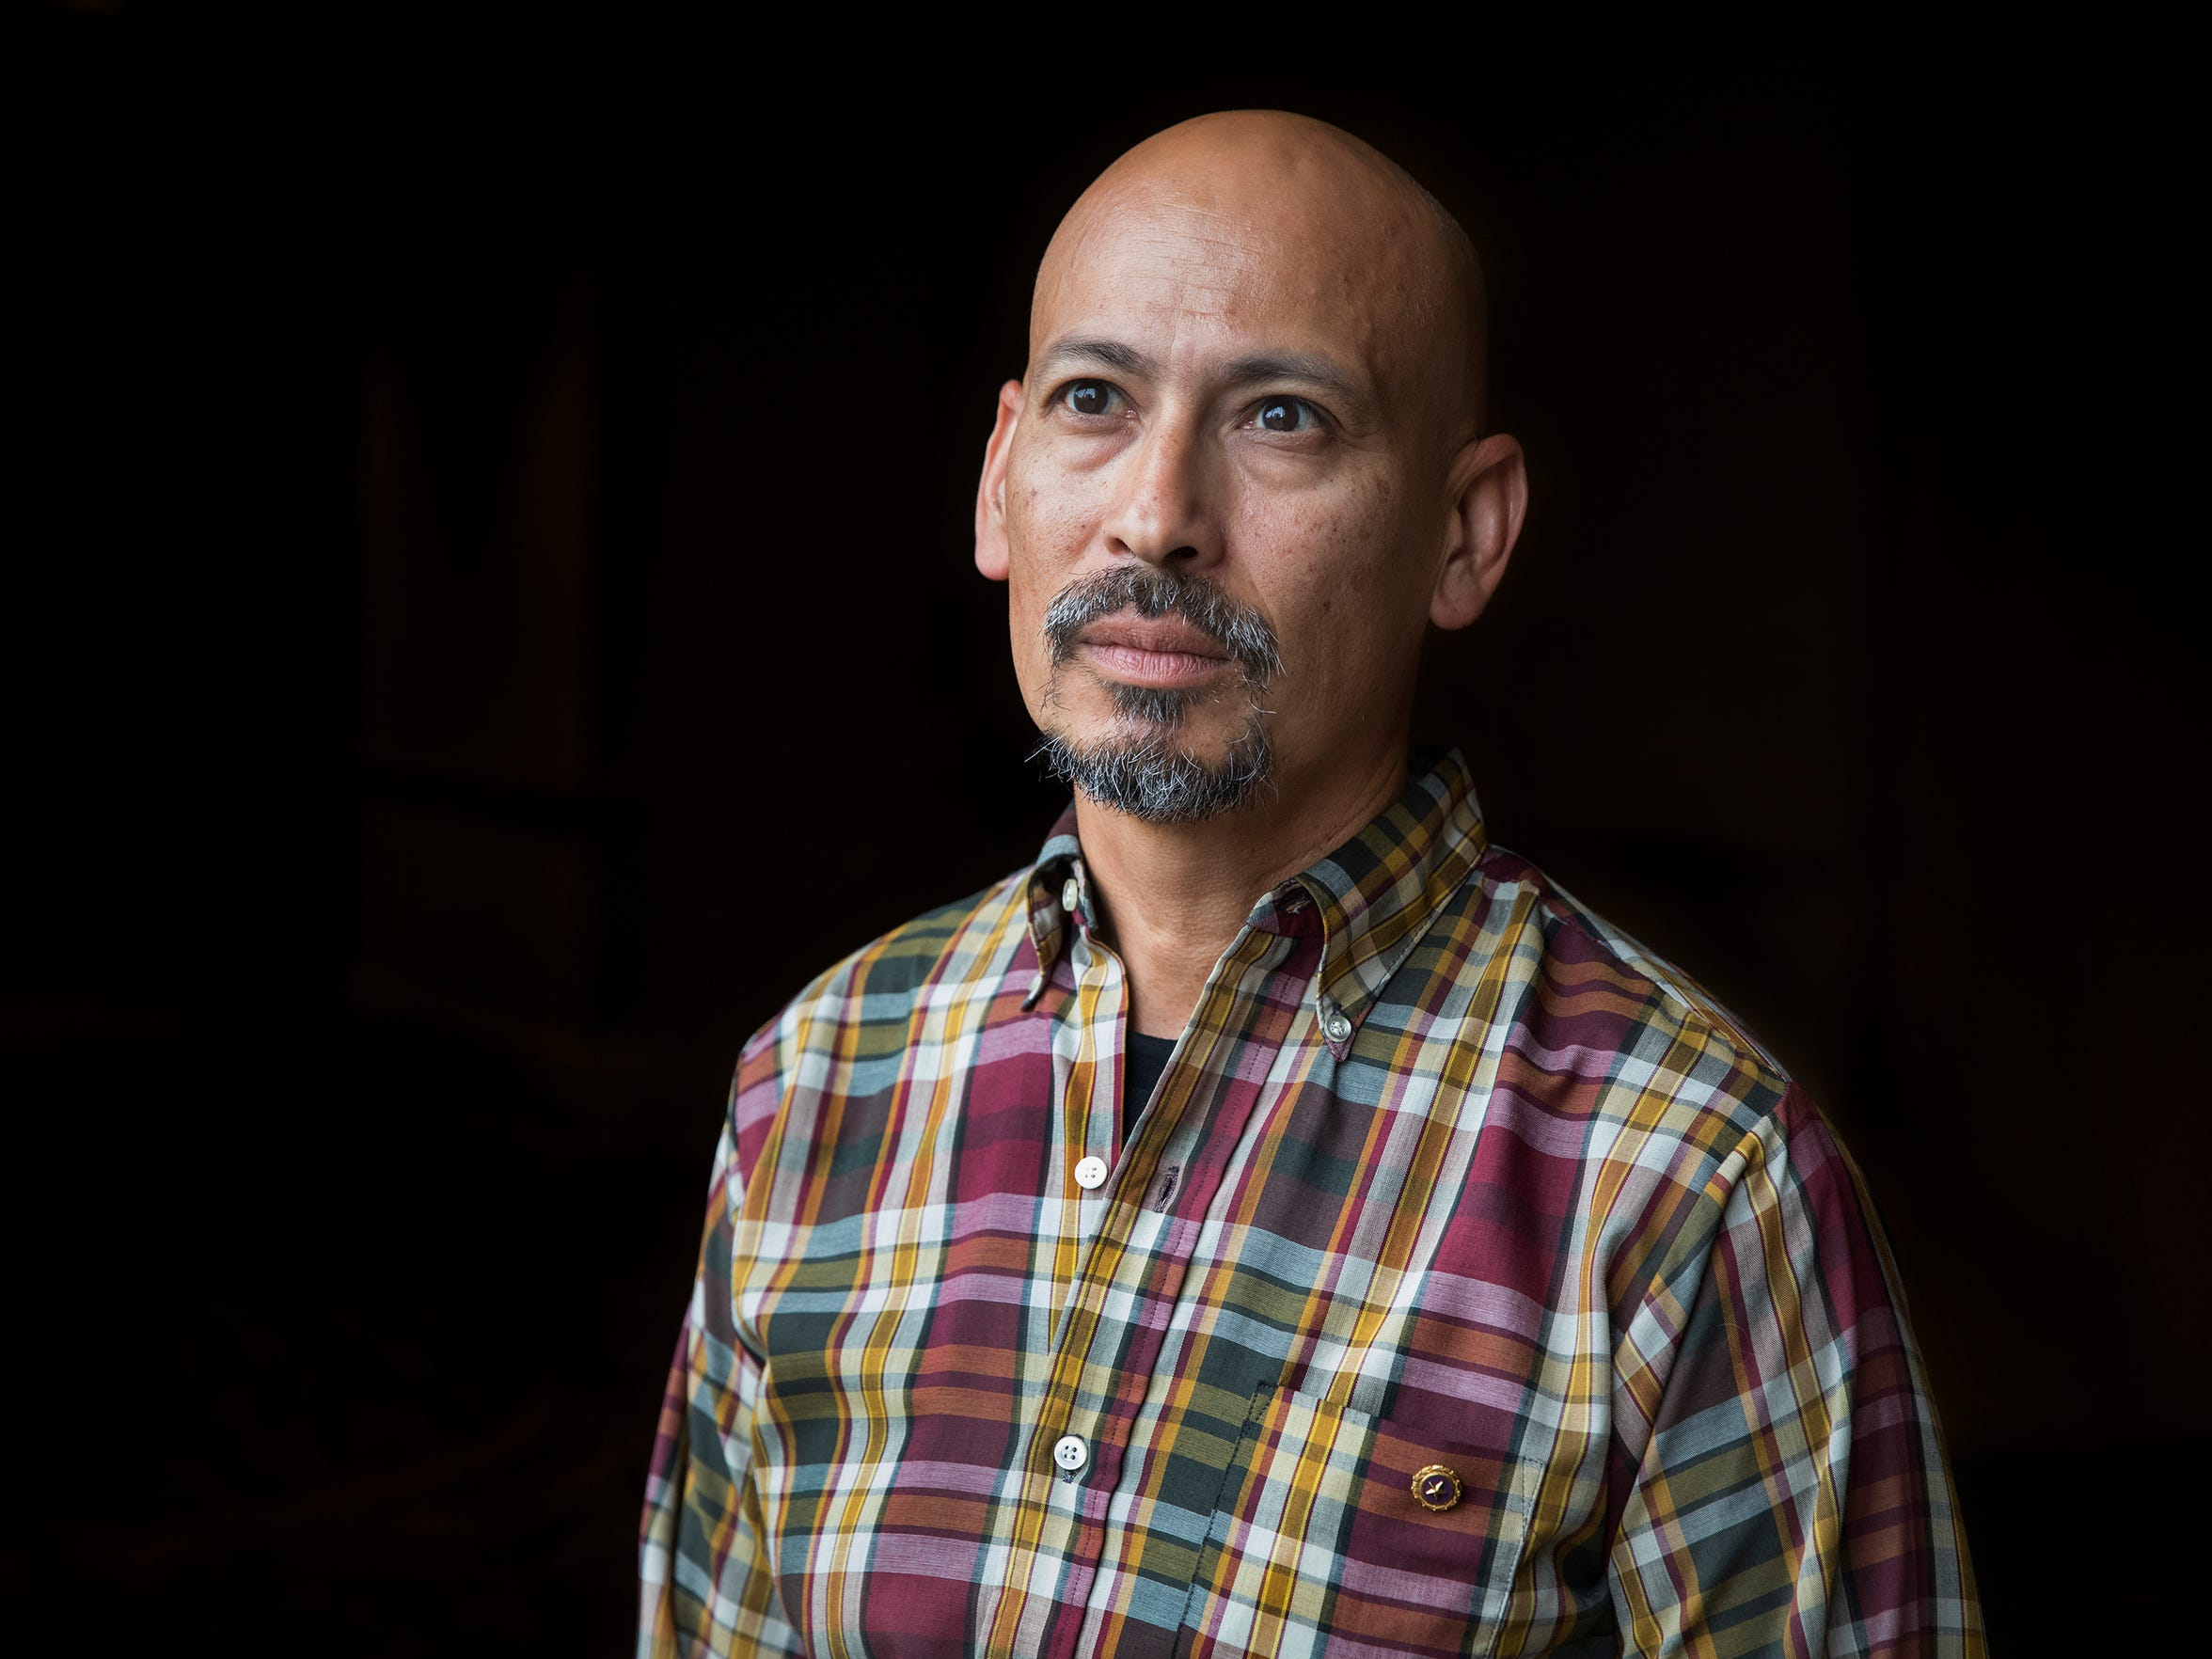 Ron Reyes lost his father in during the Vietnam War. Reyes is part of the 2 Sides Project, which has made a film about the children of soldiers killed in action on both sides of the war.